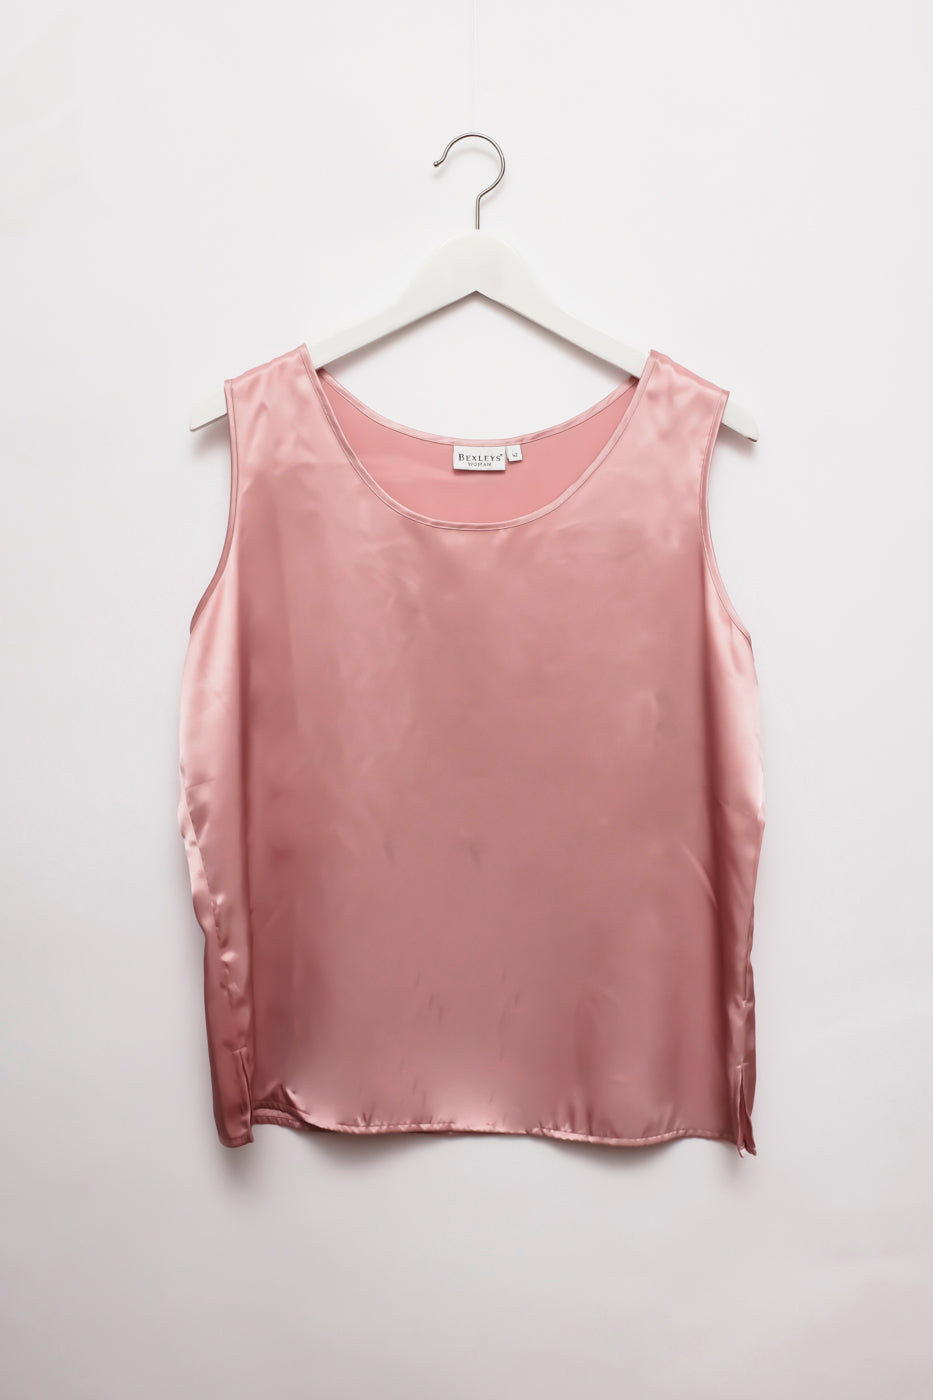 0002_LIQUID SATIN ROSE TOP